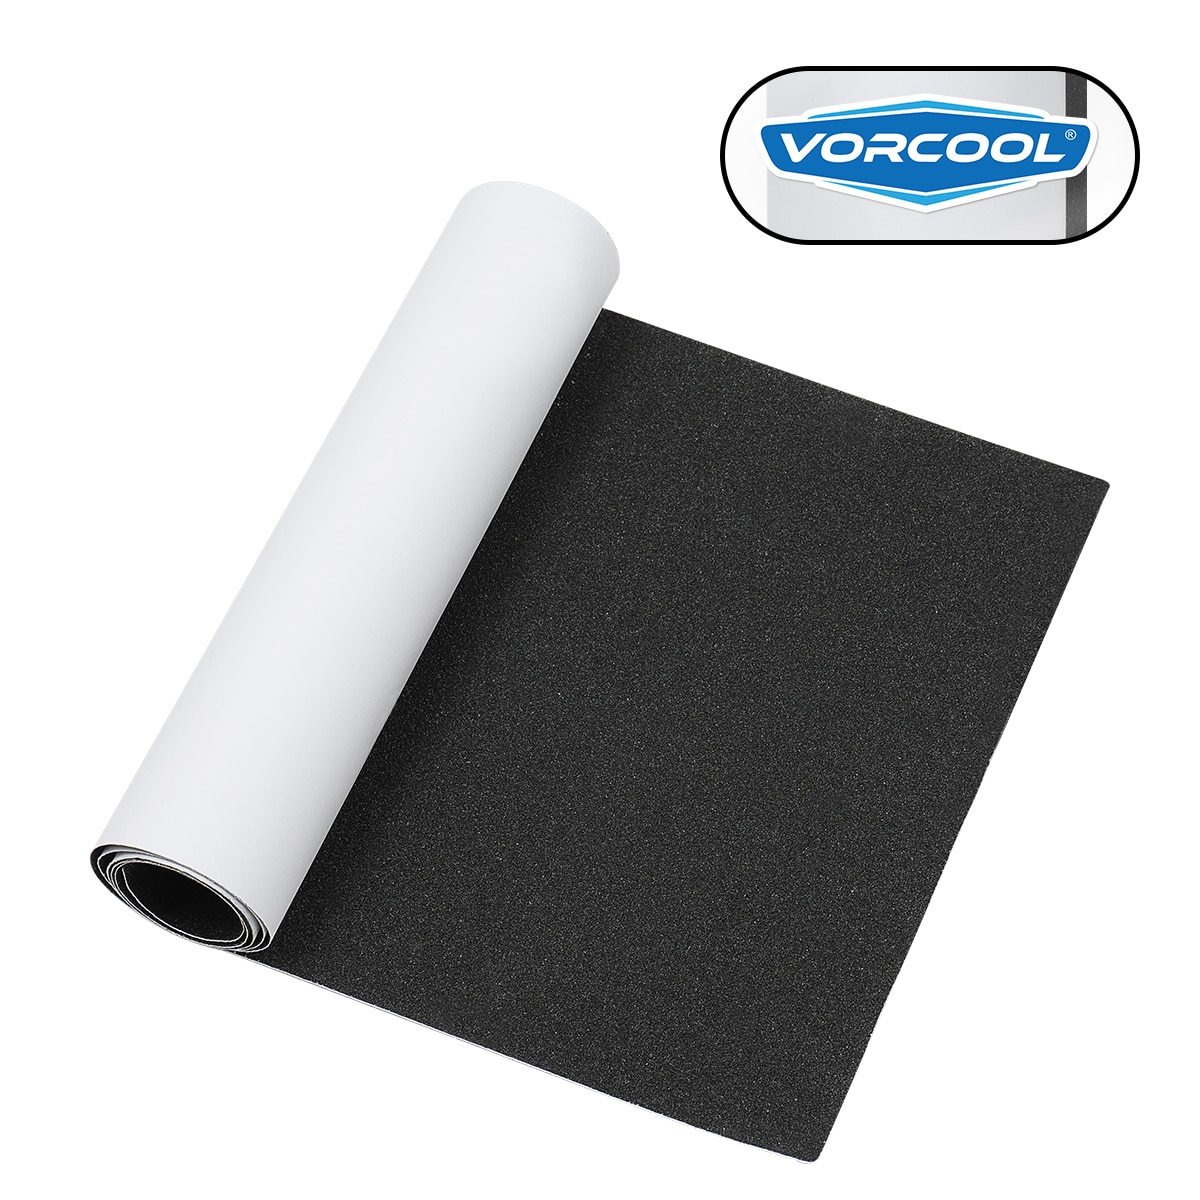 VORCOOL Skateboard Grip Tape Sheet Sandpaper for Rollerboard Stairs Pedal  Wheelchair 80x20cm